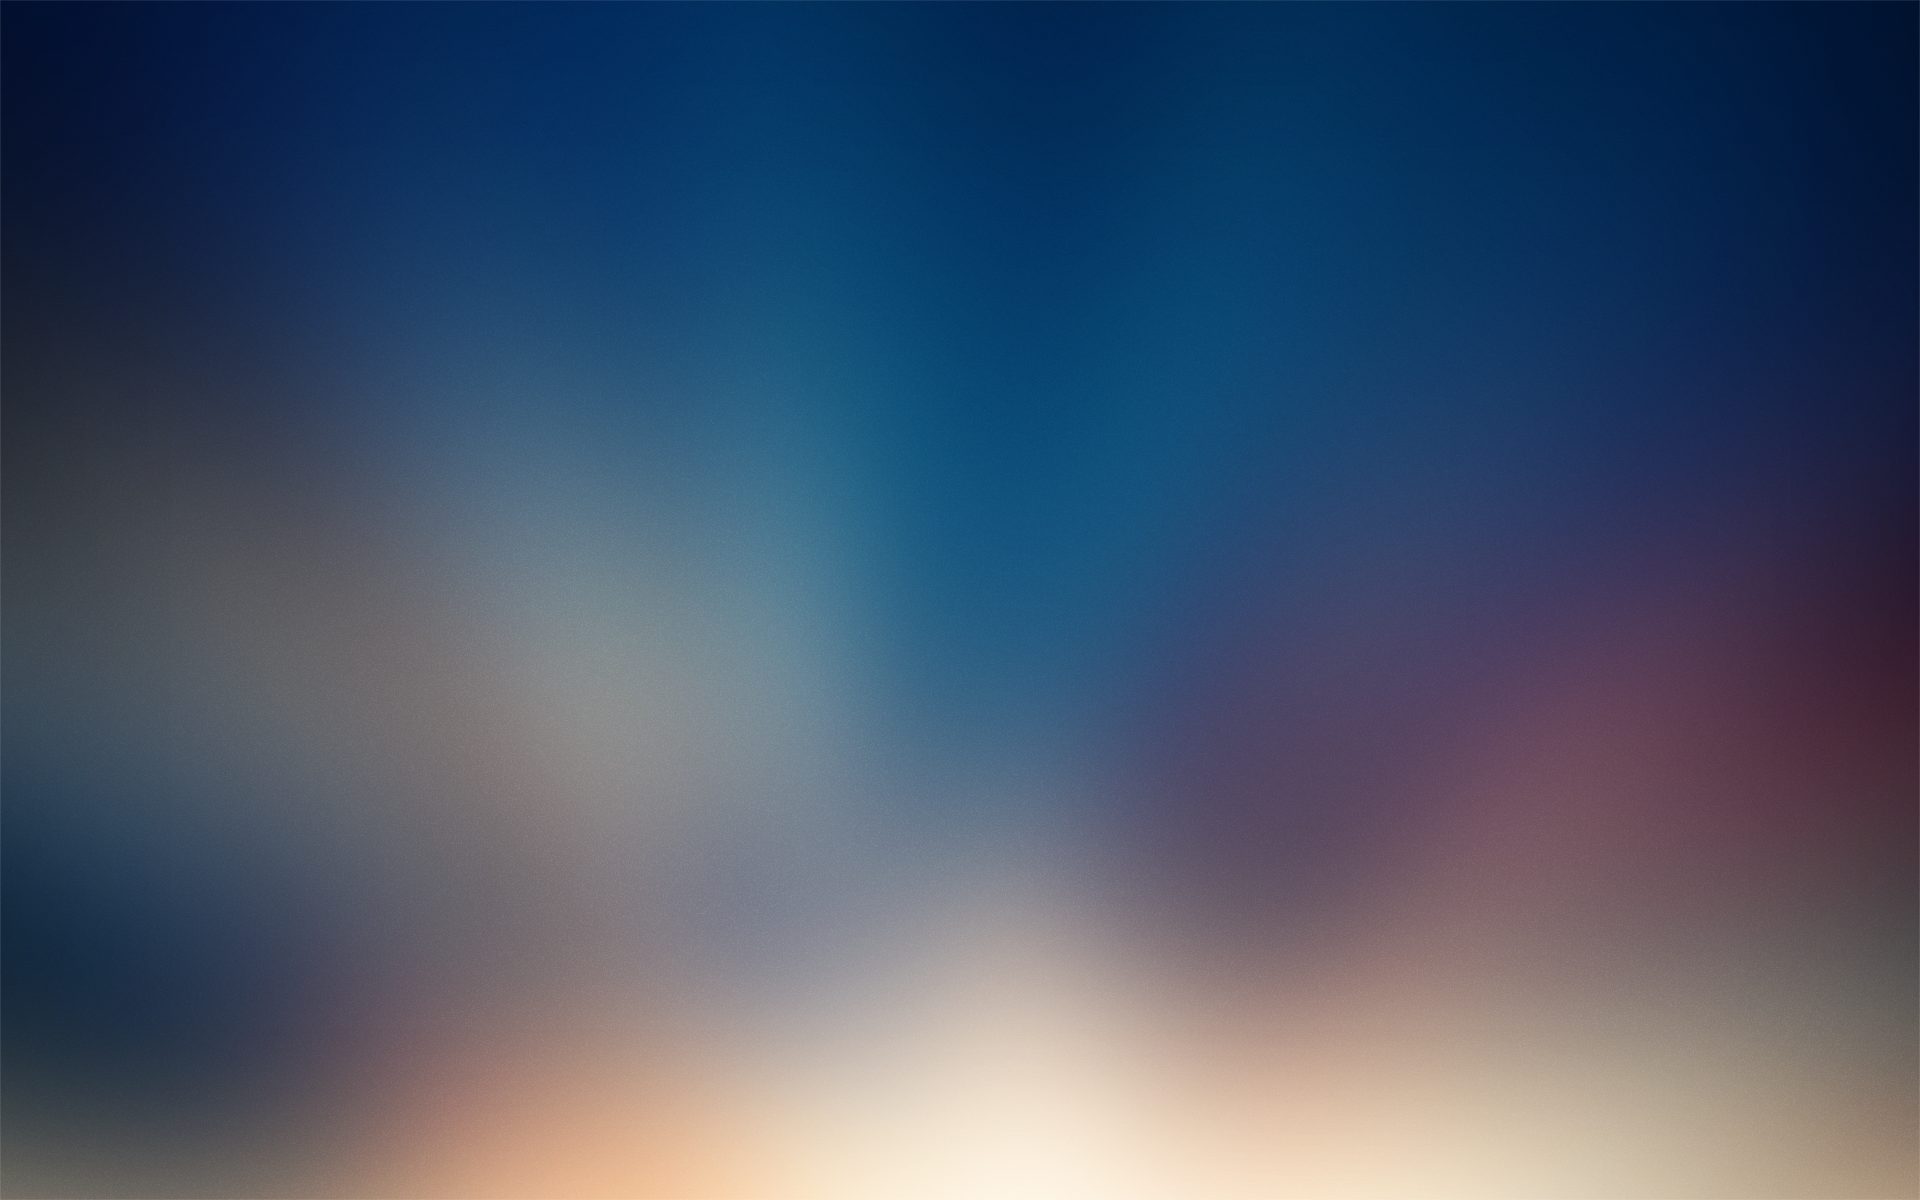 Gradient Background 26046 1920x1200 Px Hdwallsource Com